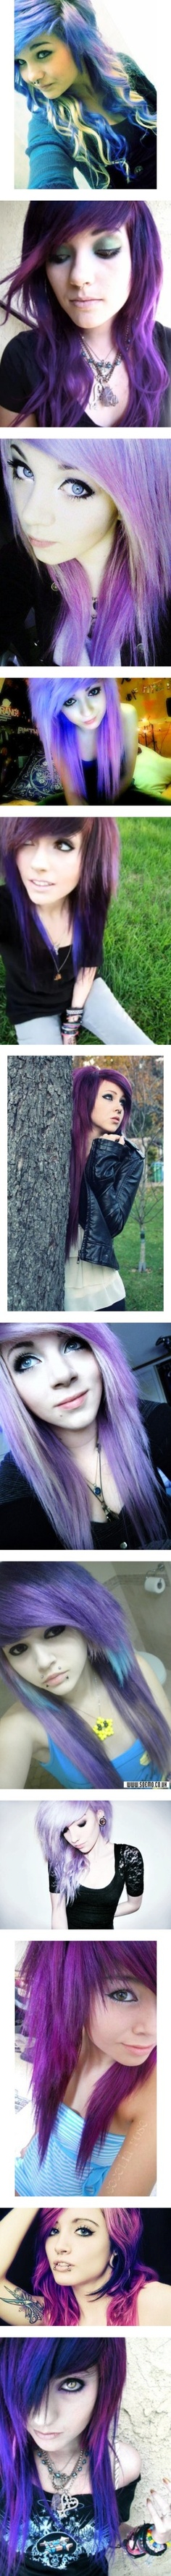 Love love love purple o hair pinterest scene